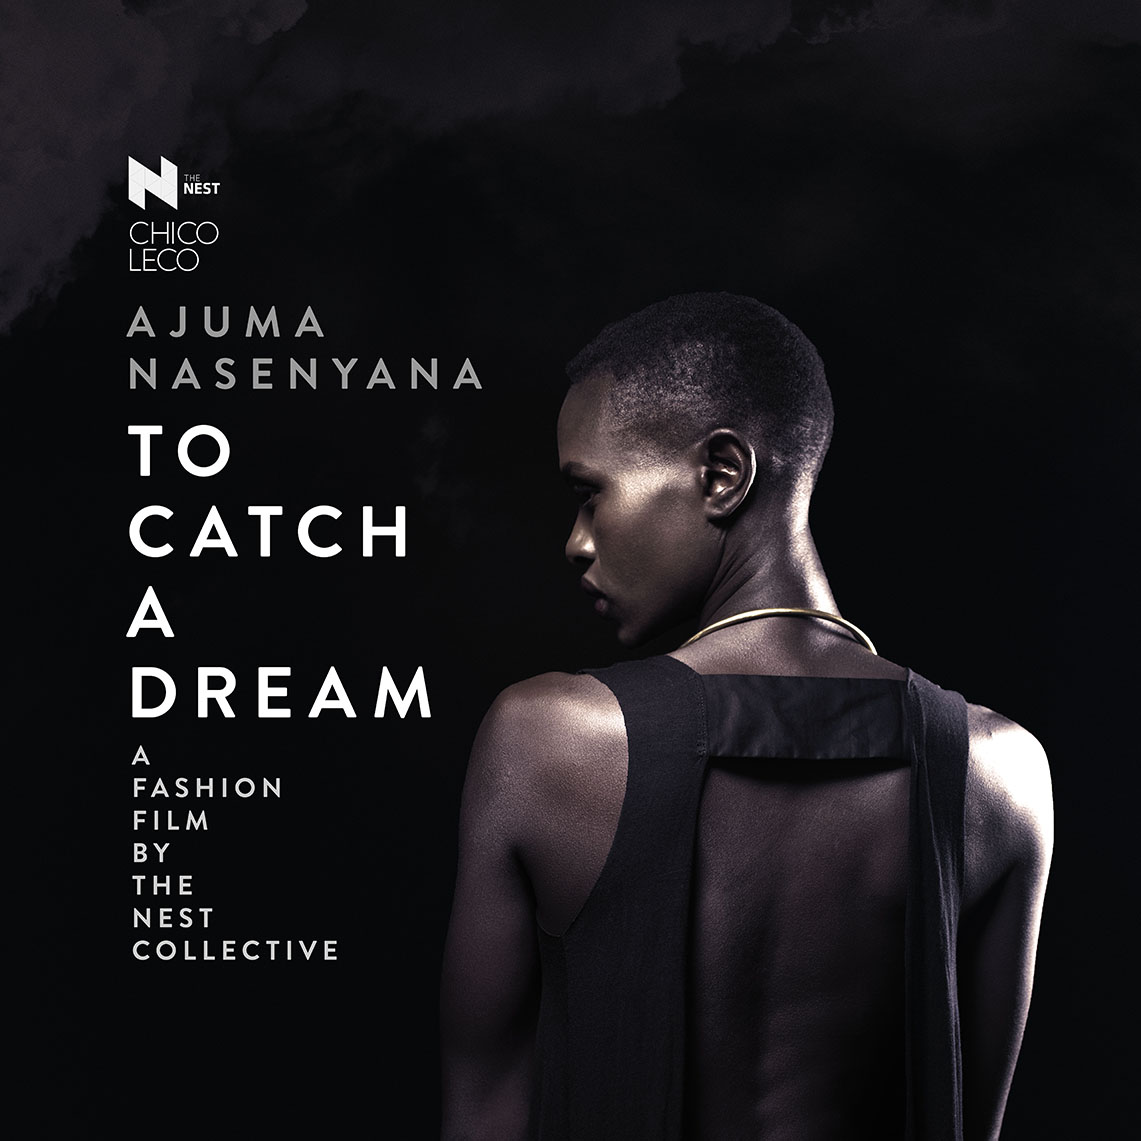 Trailer for The NEST Collective's second fashion film project in collaboration with Chico Leco - To Catch A Dream, starring Ajuma Nasenyana. The Designers Studio Kenya Fashion